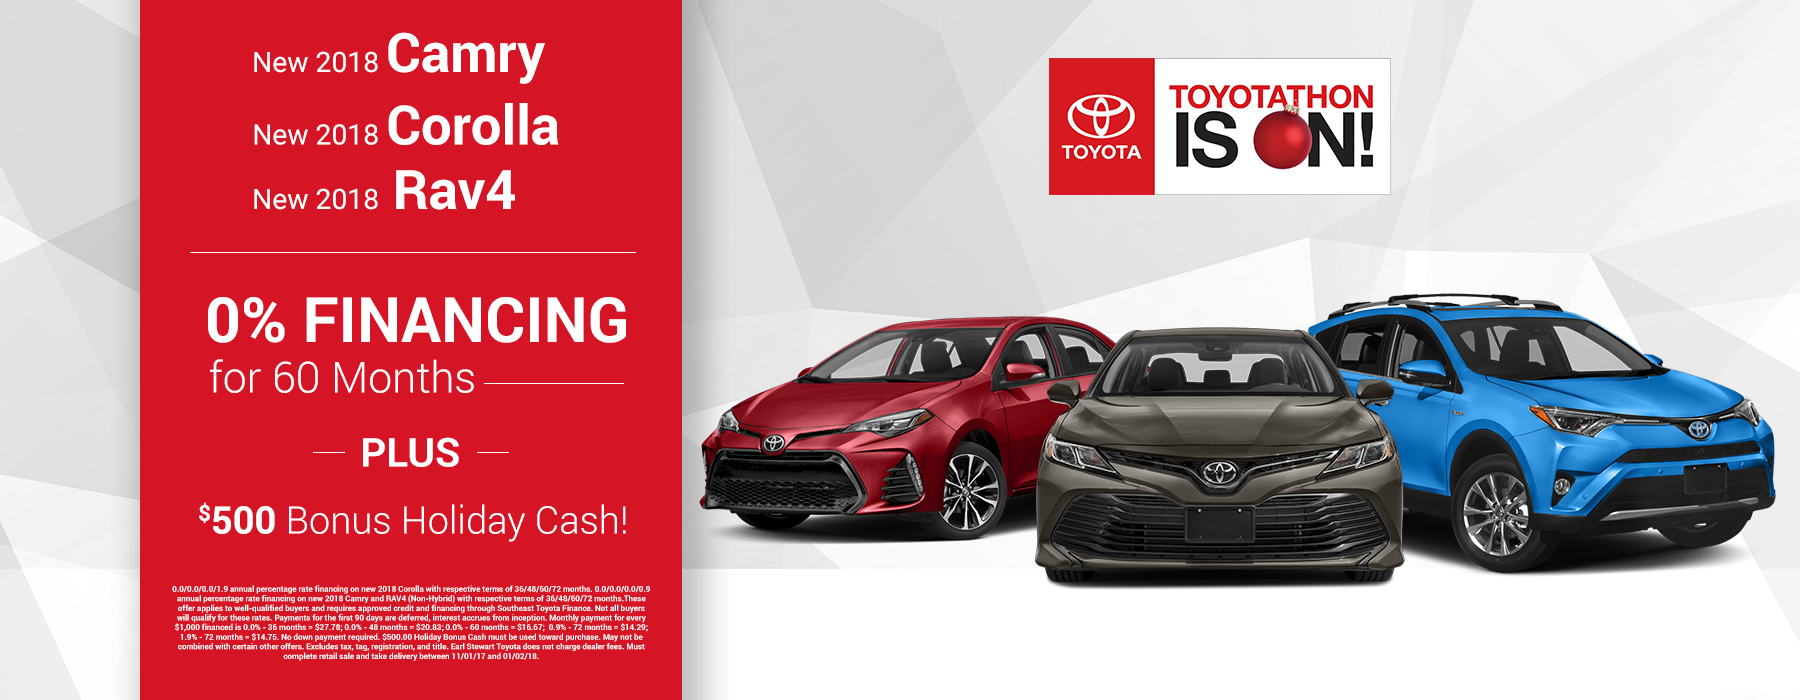 Earl Stewart Toyota Used Cars >> Earl Stewart Toyota of North Palm Beach: Toyota Dealer in Lake Park serving Palm Beach County